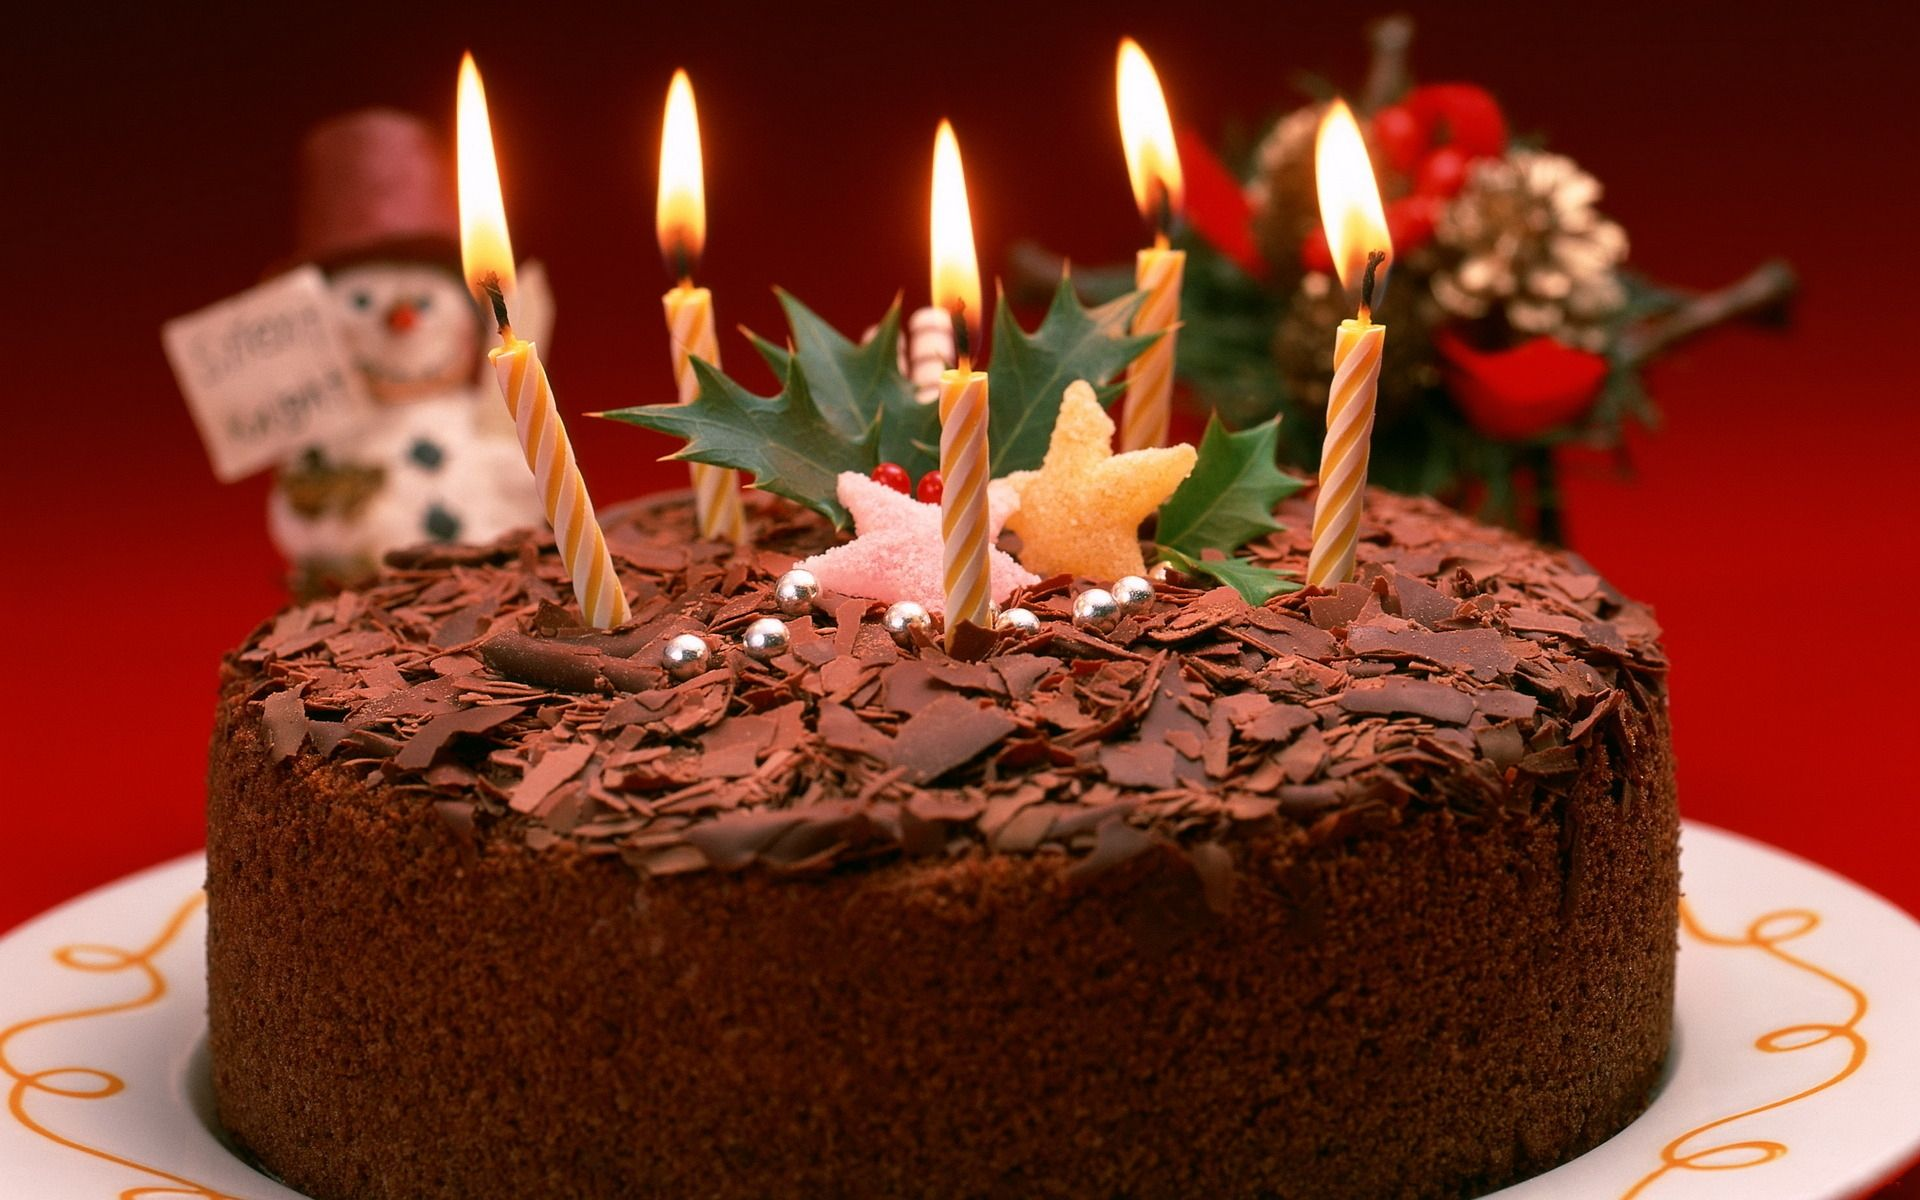 Happy Birthday Cake With Candles Wallpaper Hd Httpimashonw